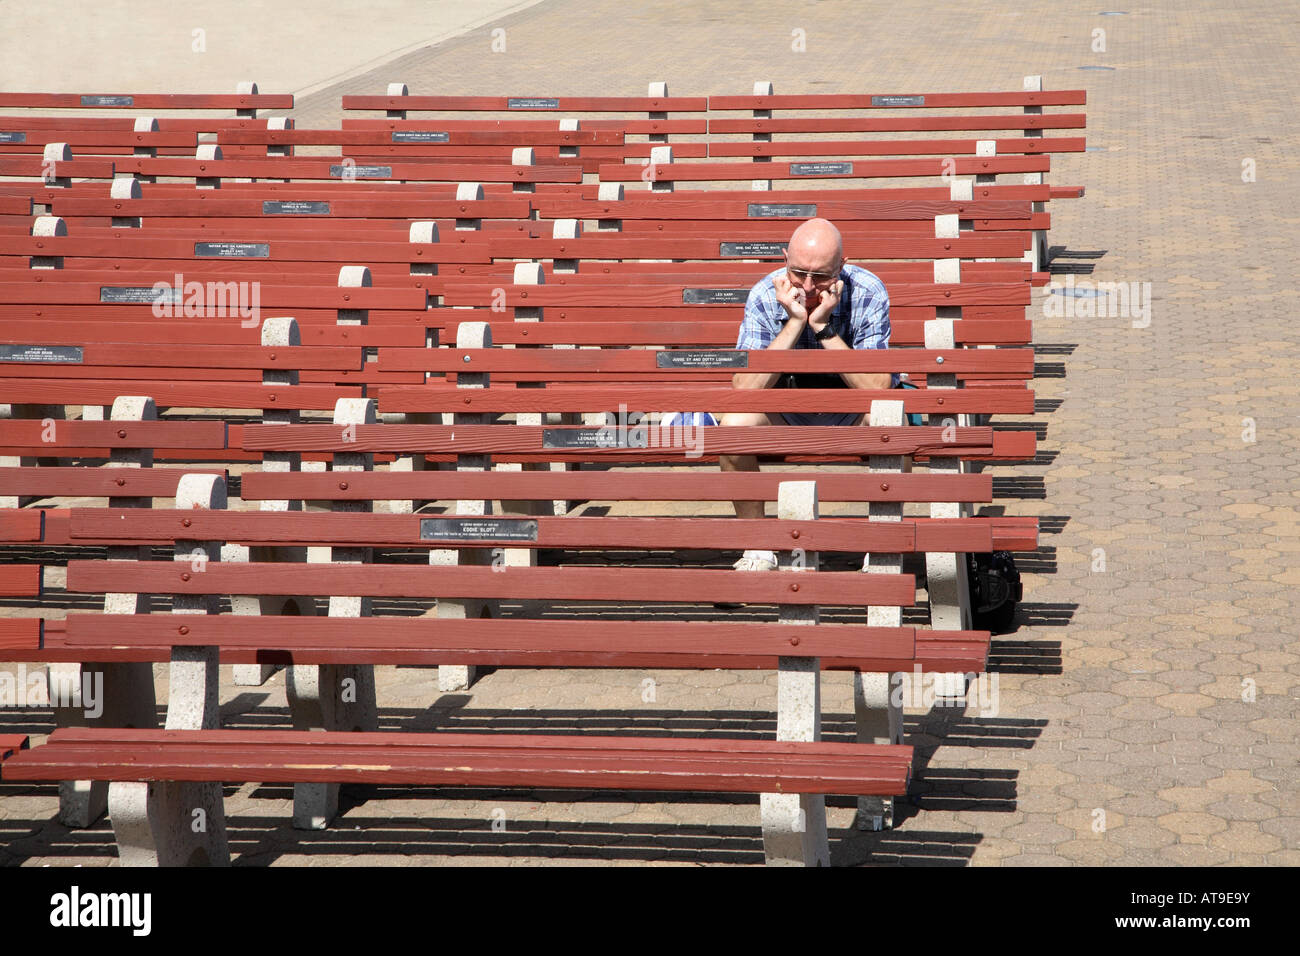 Rows of concrete and wooden seats all empty except one soiltary man sitting on end of row looking very sad and alone. - Stock Image